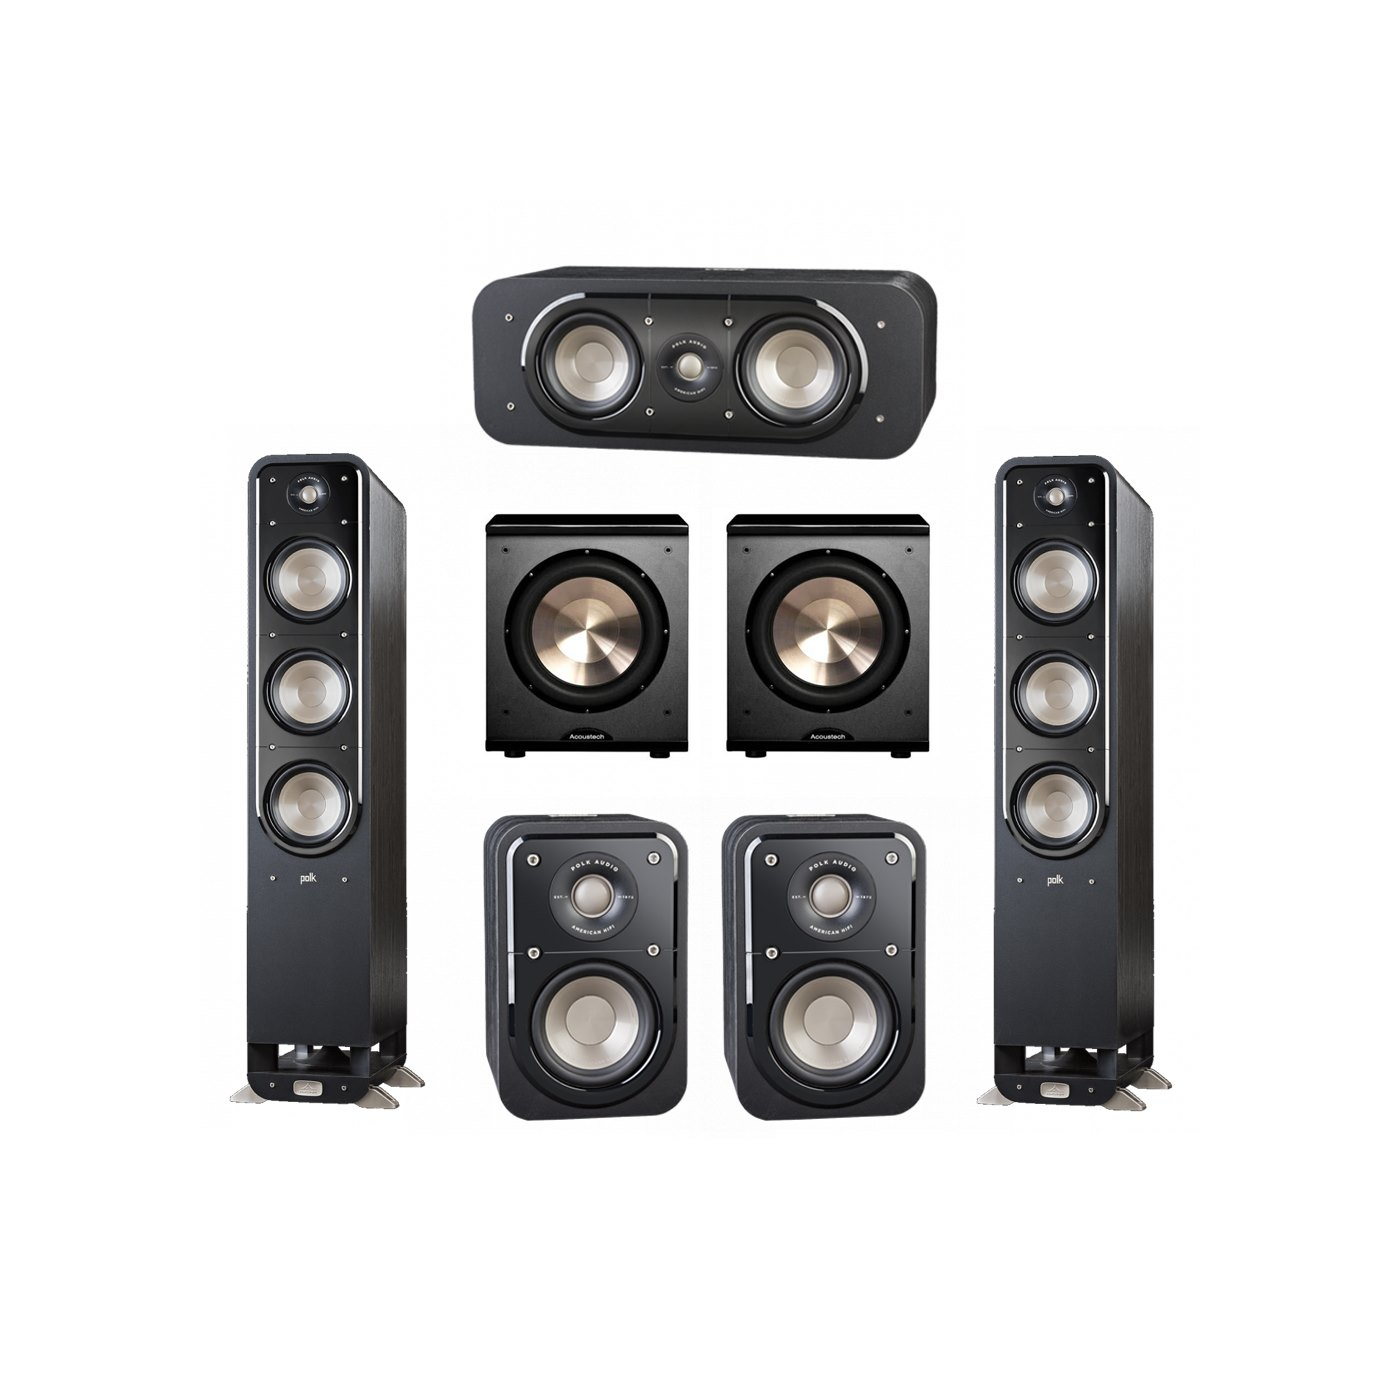 Polk Audio Signature 5.2 System with 2 S60 Tower Speaker, 1 Polk S30 Center Speaker, 2 Polk S10 Surround Speaker, 2 BIC/Acoustech Platinum Series PL-200 Subwoofer